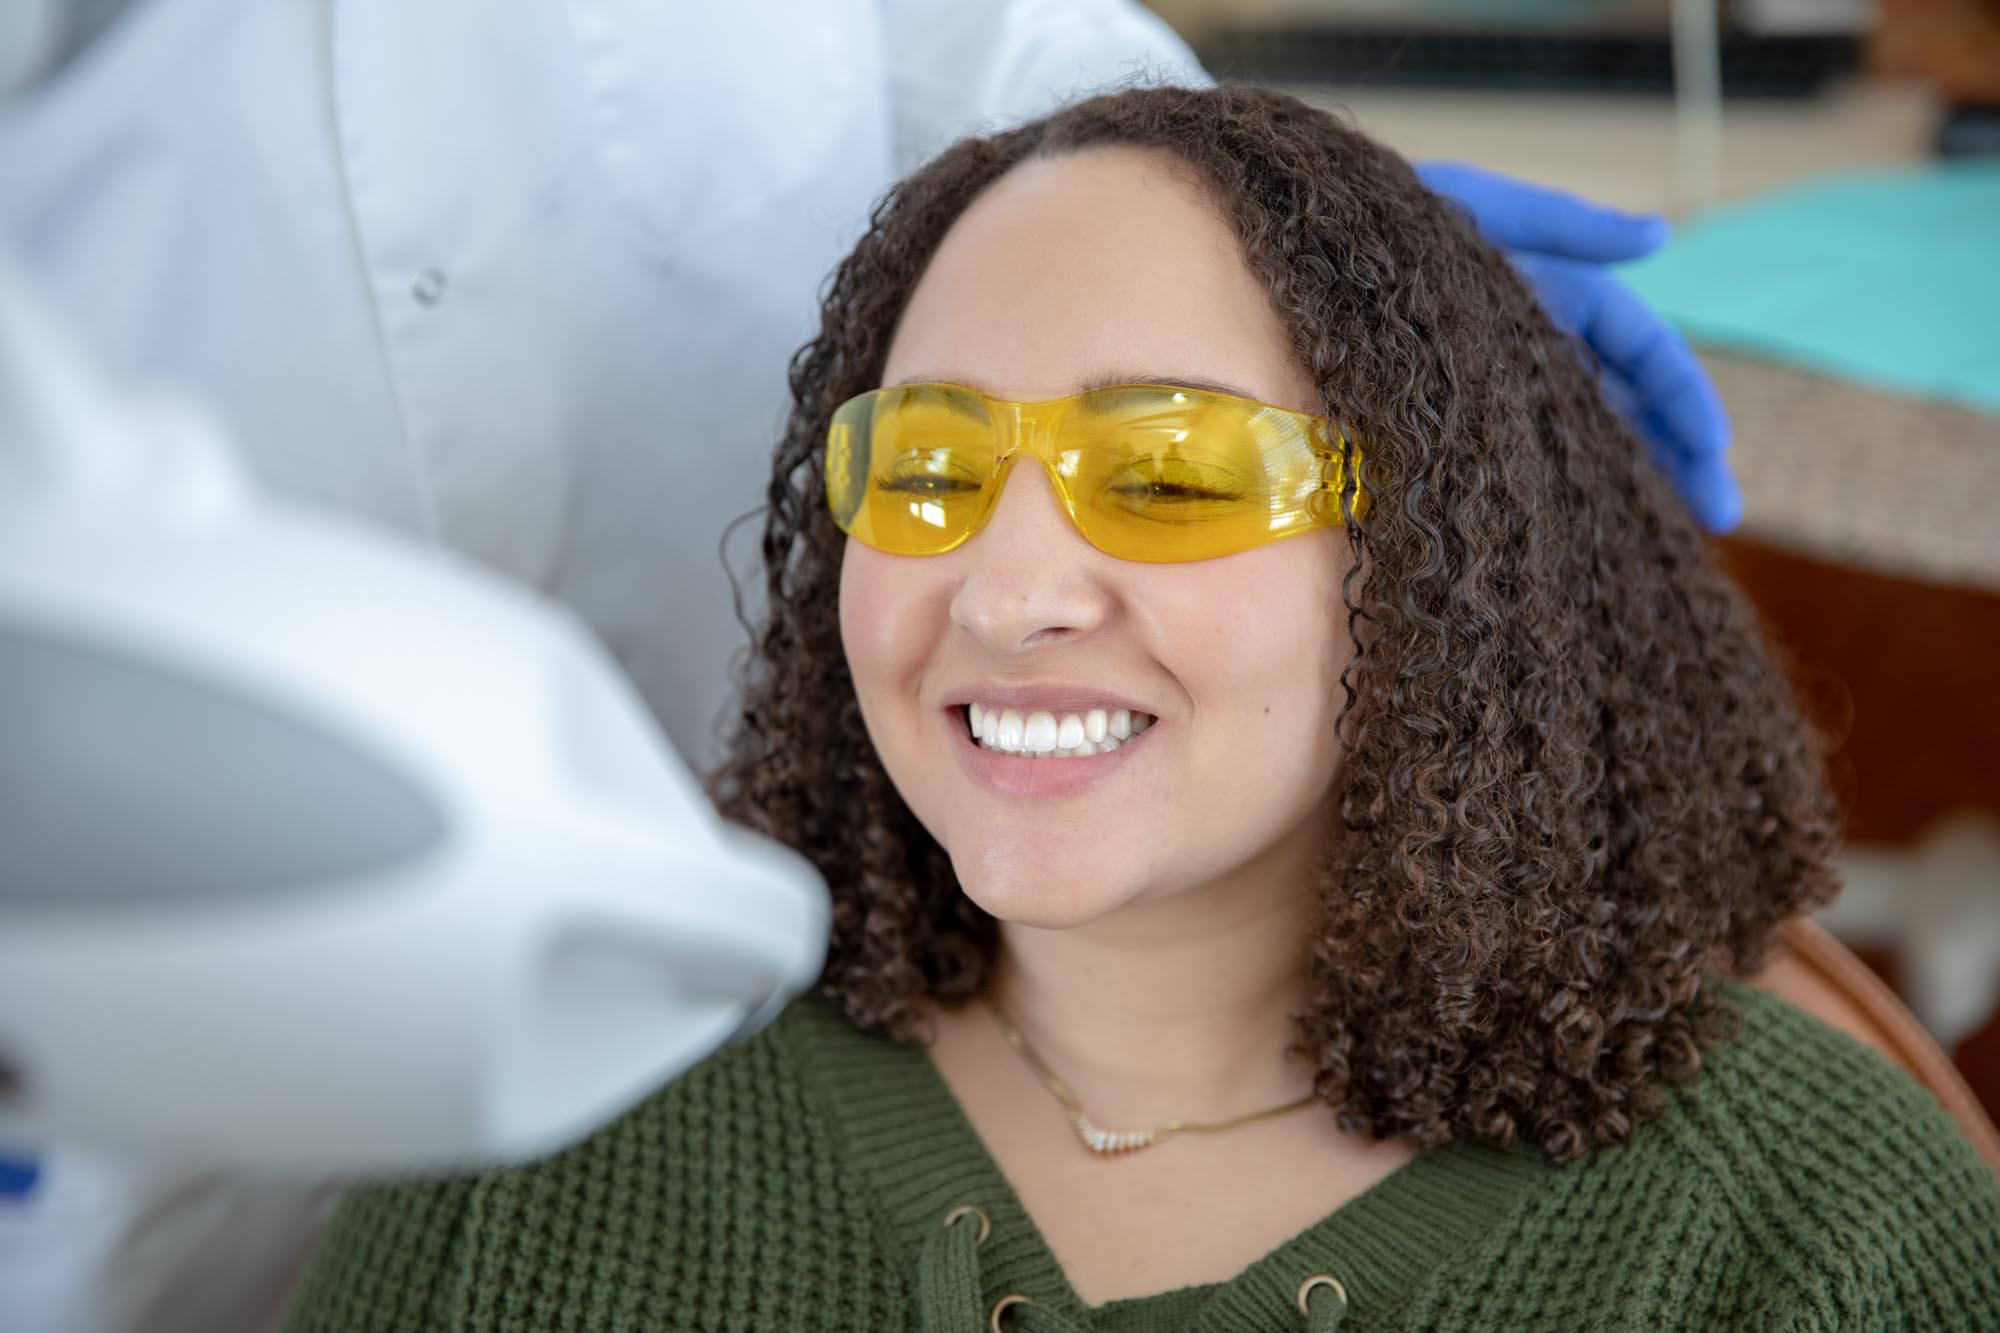 patient being examined using advanced dental technology Select Dental